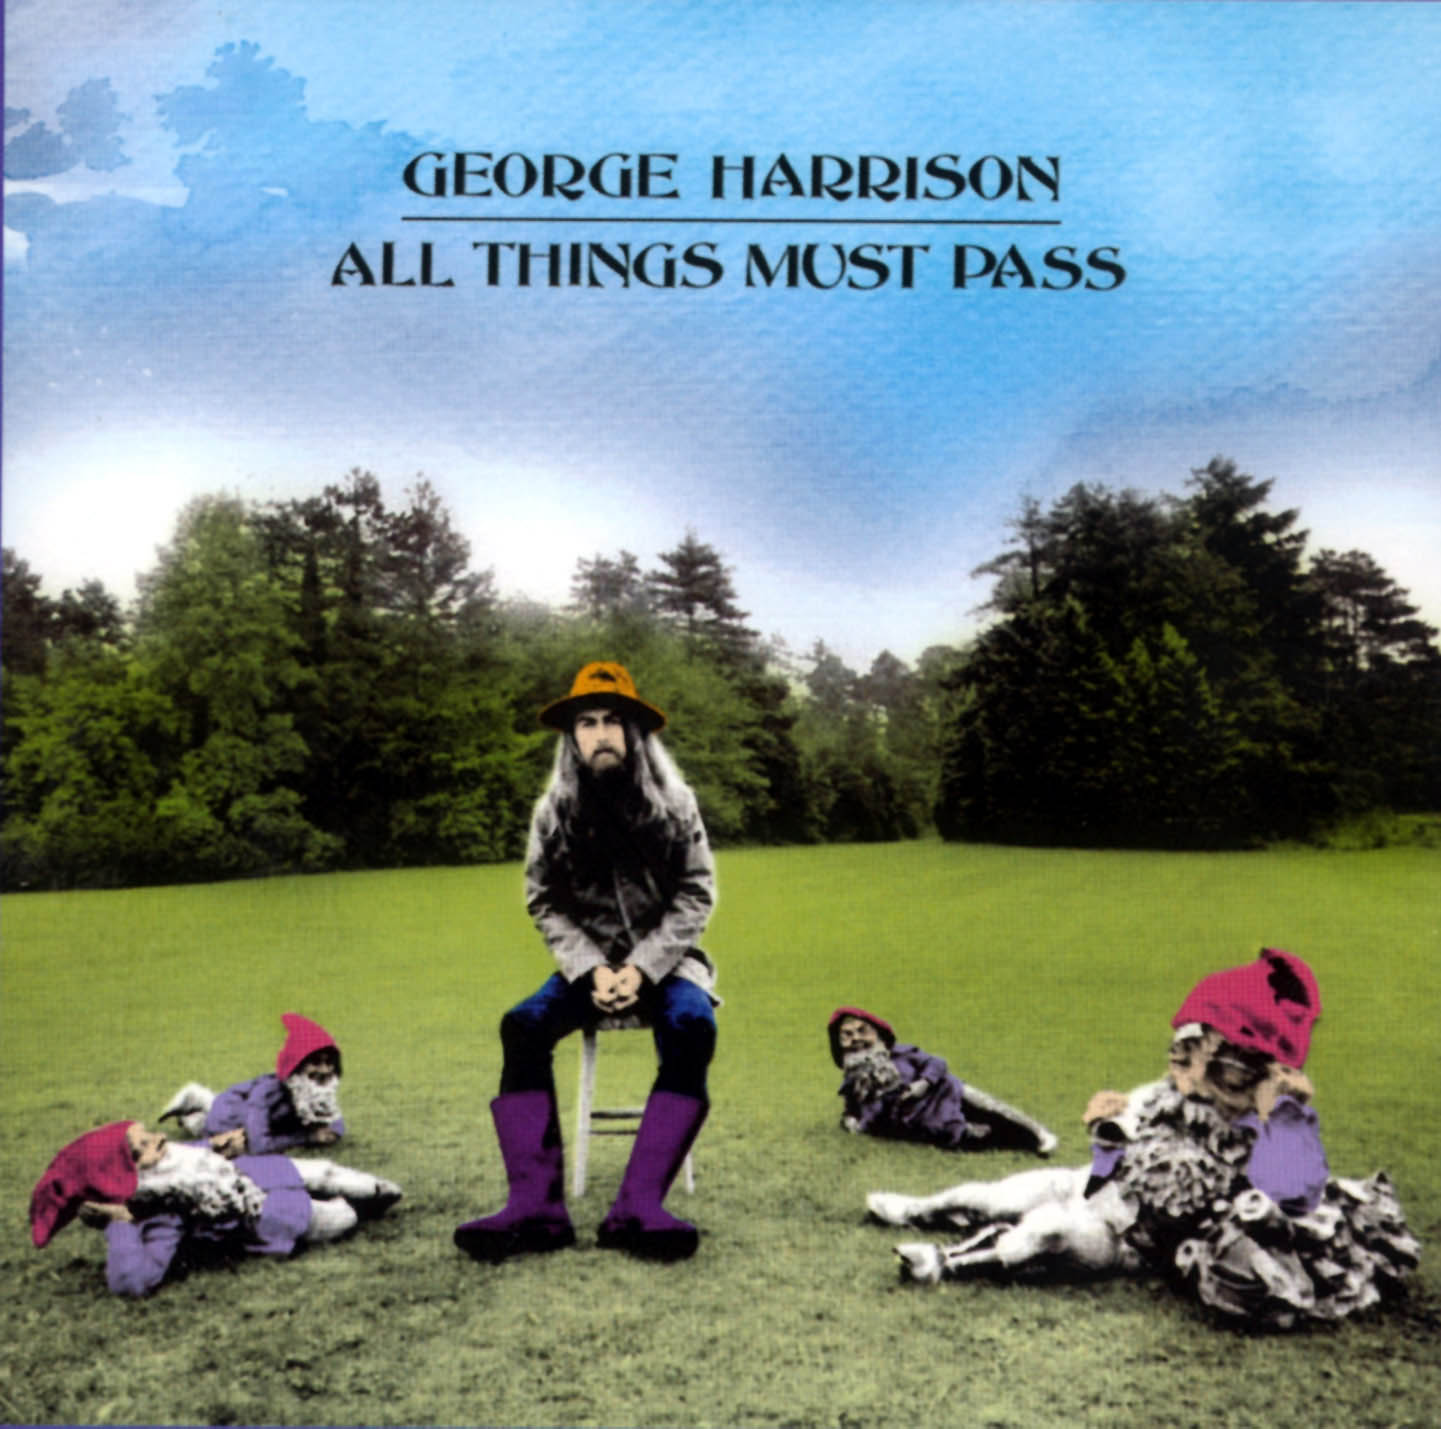 http://2.bp.blogspot.com/-DADWT0q5e8w/TtSE1E6L6XI/AAAAAAAACWM/T0Hodp05BeI/s1600/George_Harrison-All_Things_Must_Pass-Frontal.jpg